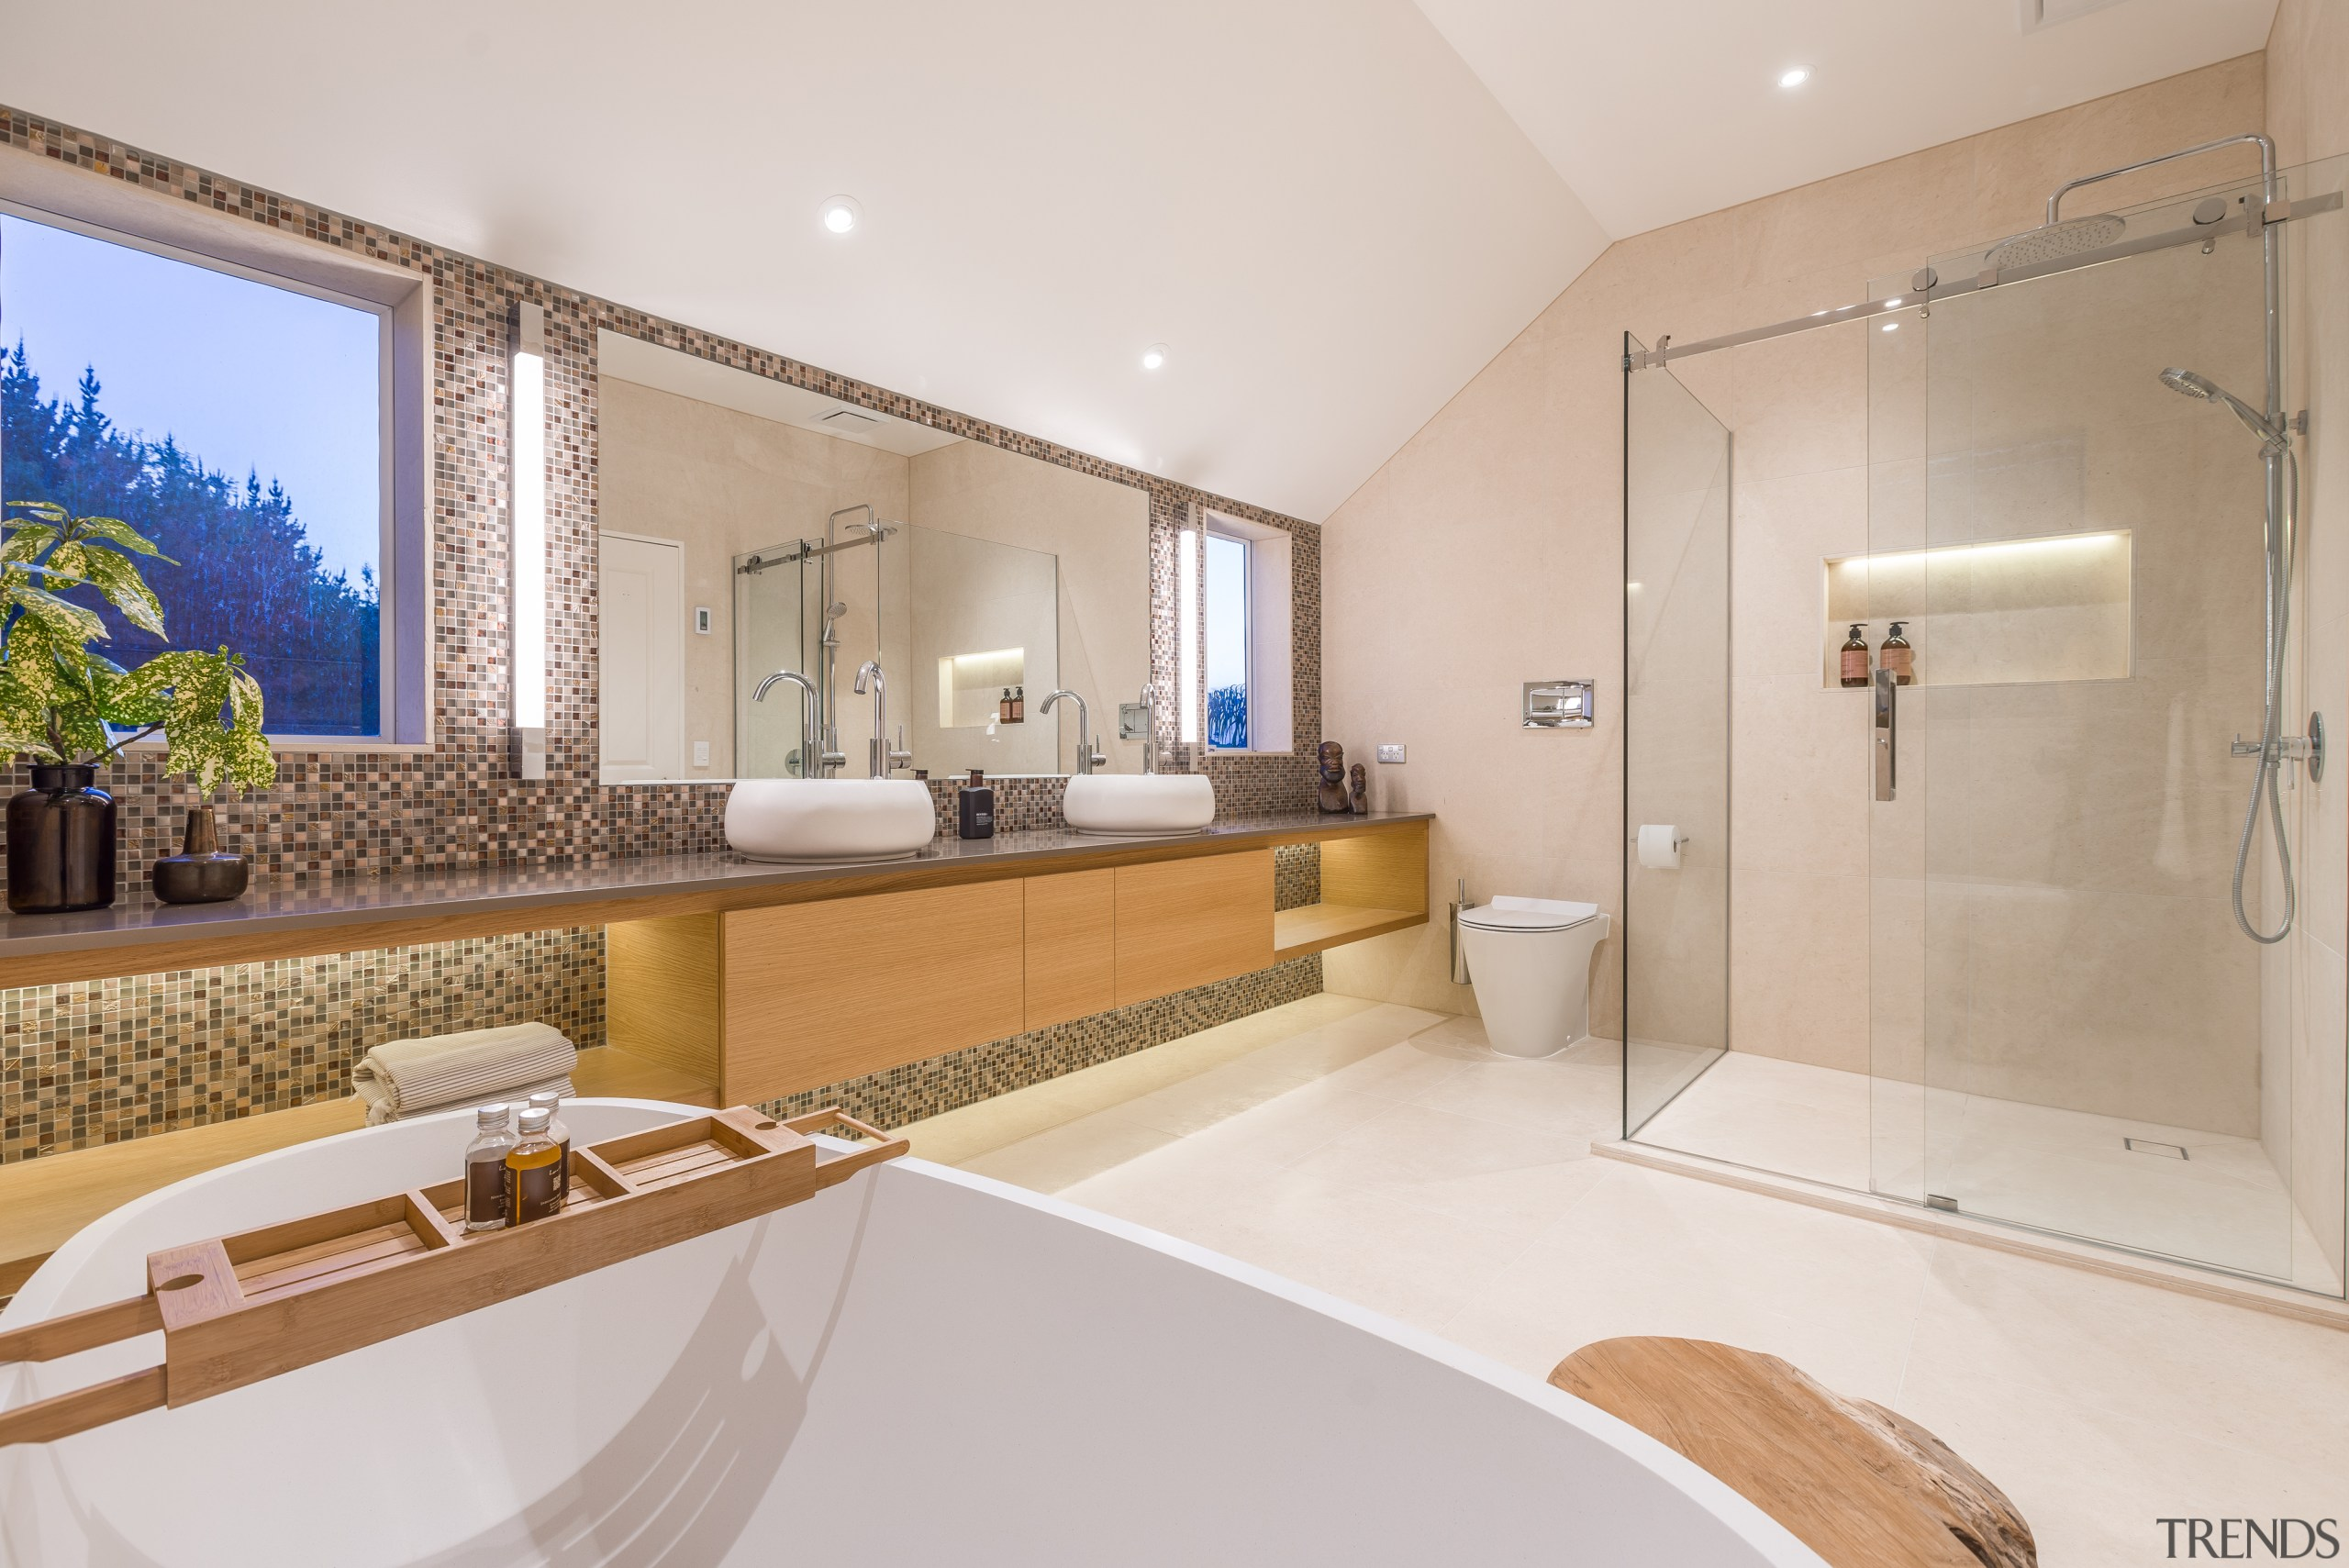 The owners wanted their renovated master suite to bathroom, estate, home, interior design, property, real estate, room, suite, gray